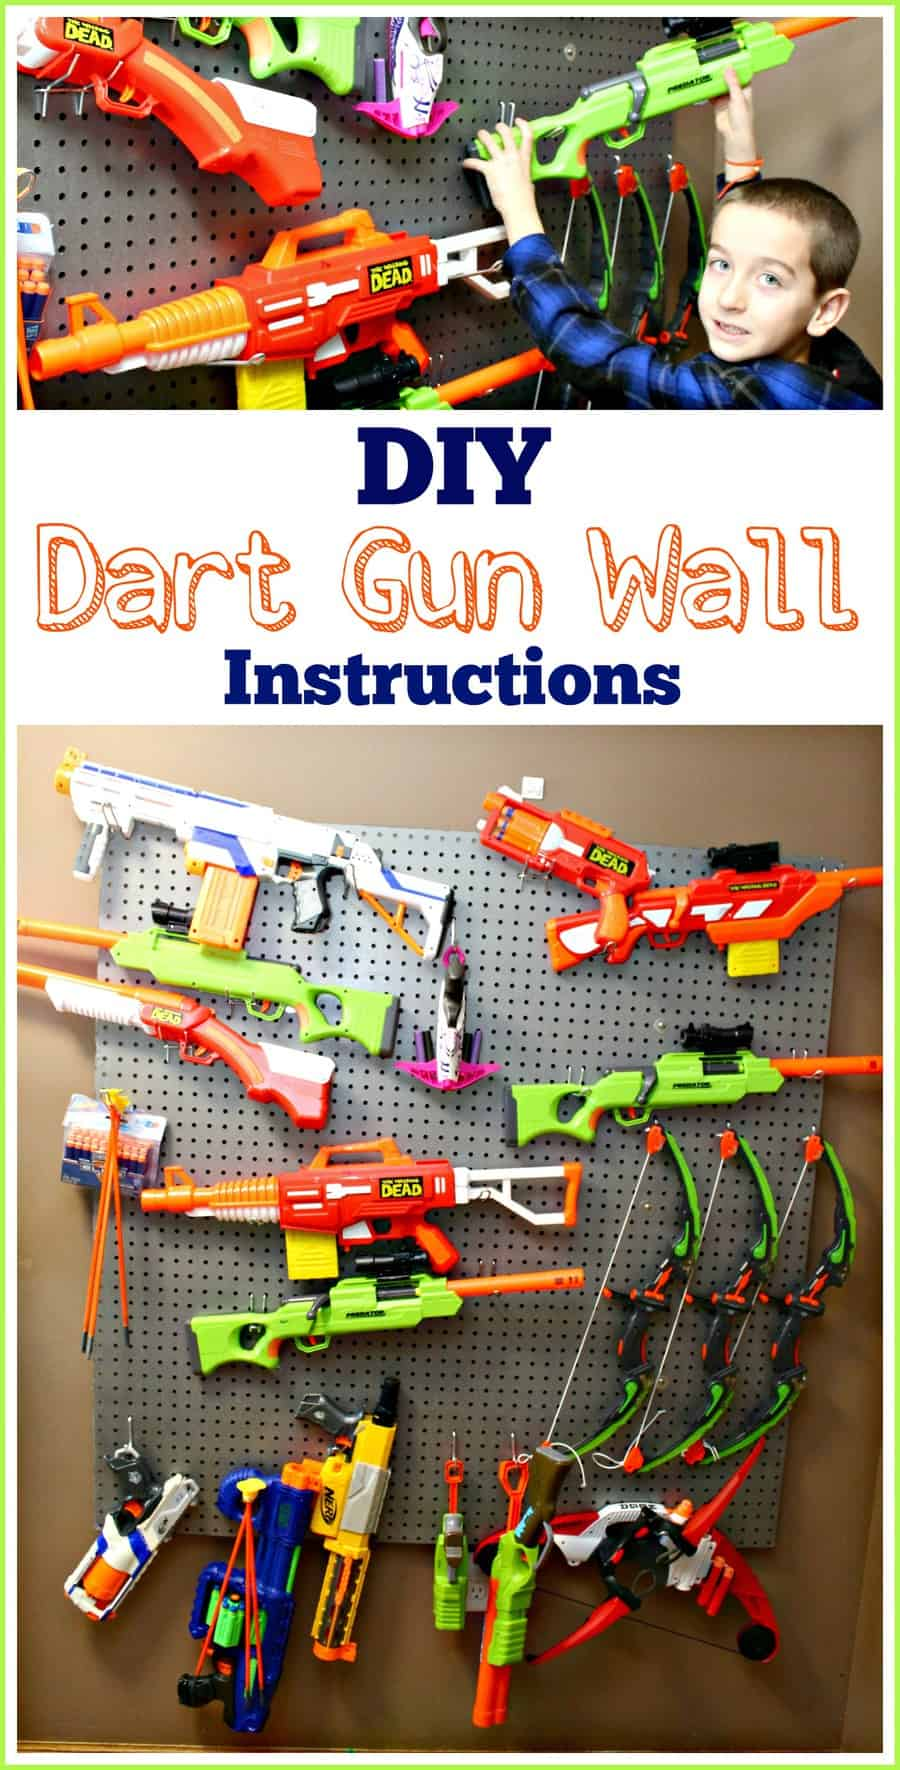 How To Built A DIY Nerf Gun Wall {Instructions}